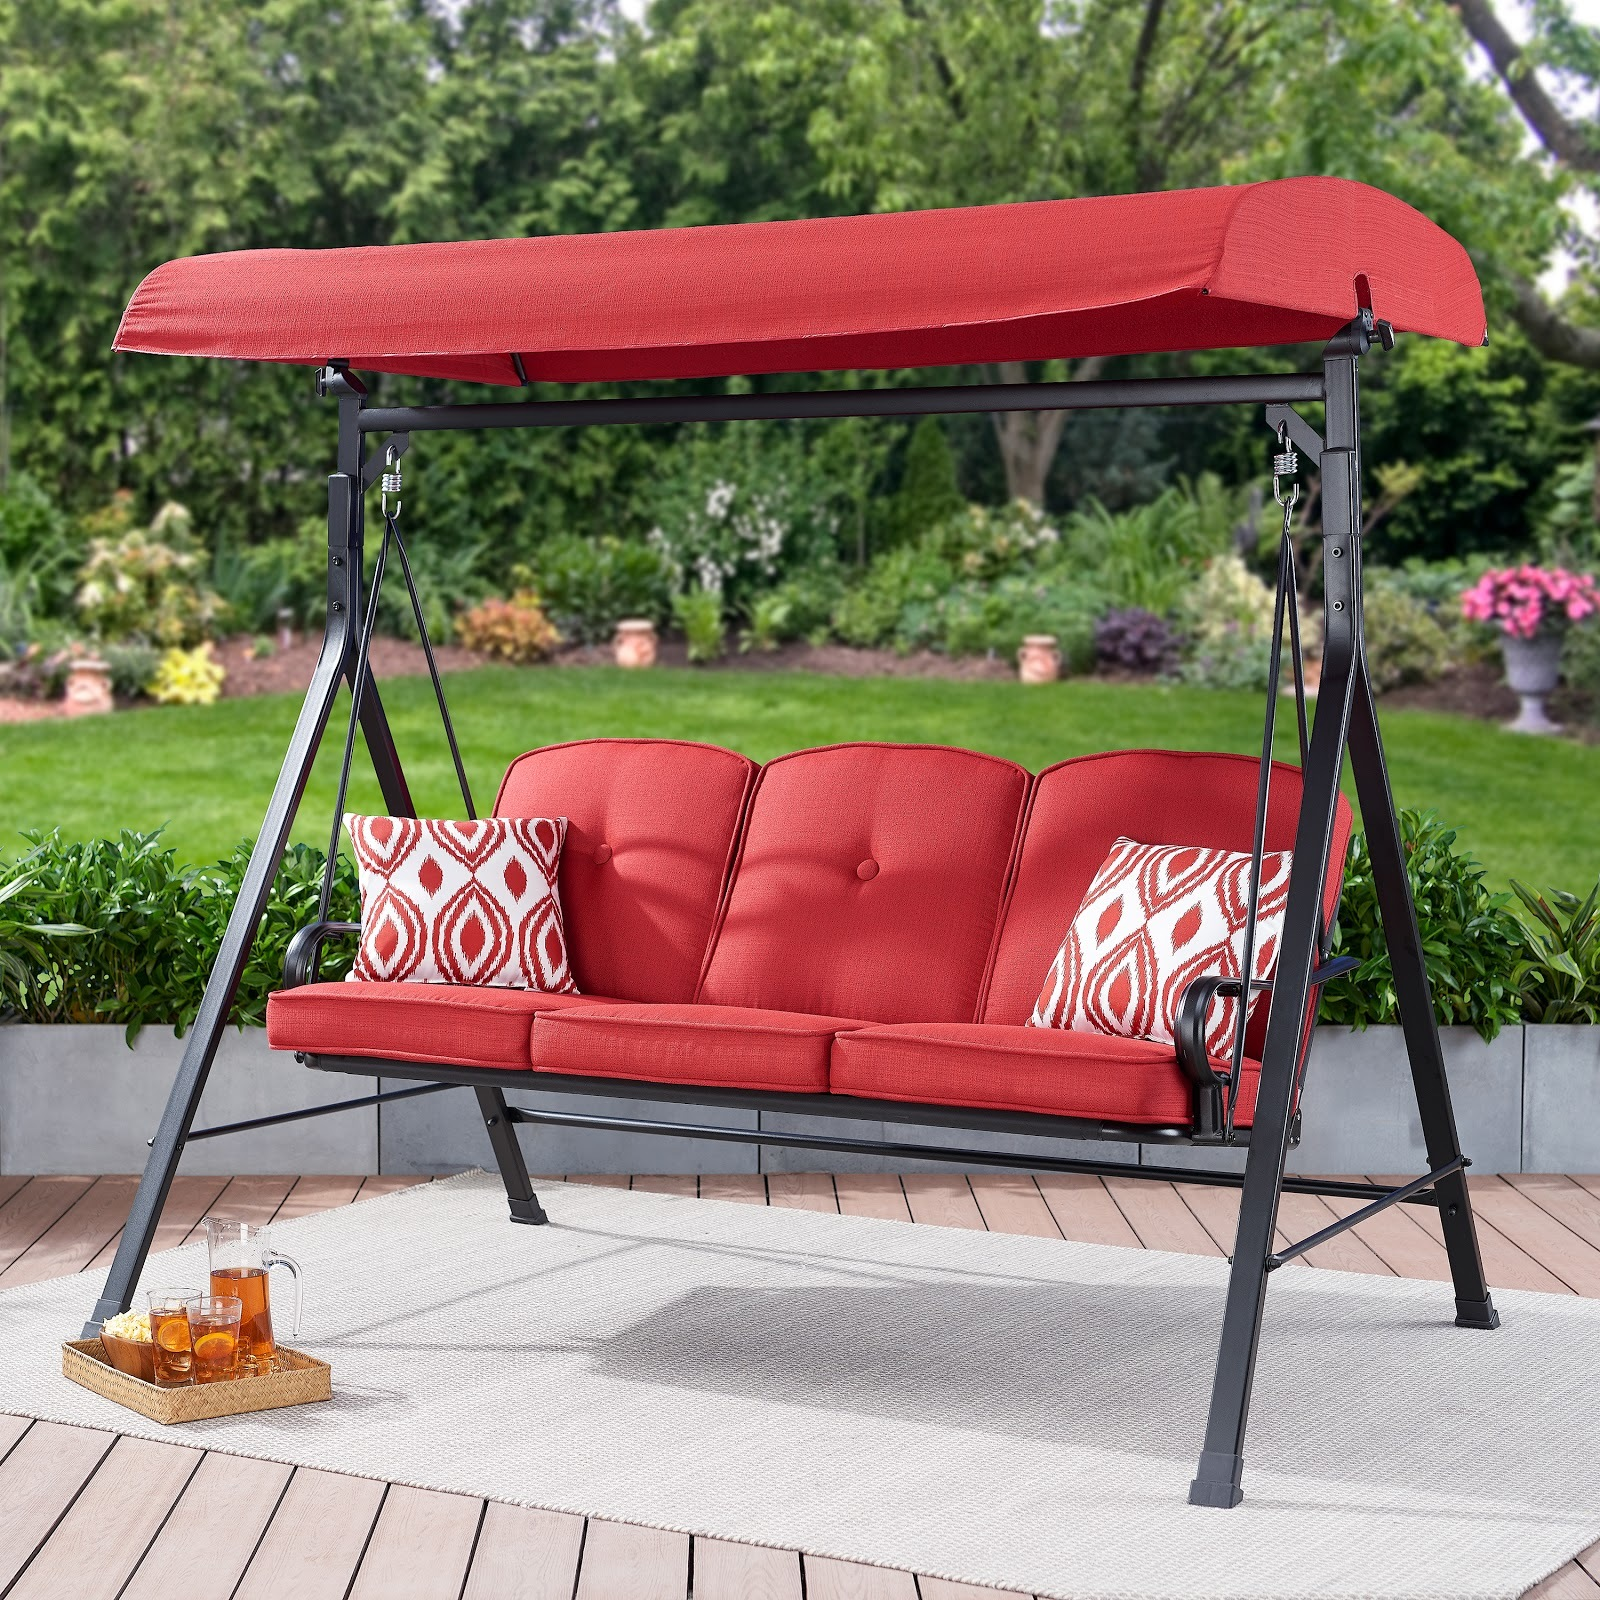 Mainstays Carson Creek 3-Seat Canopy Patio Swing with Red Cushions photo